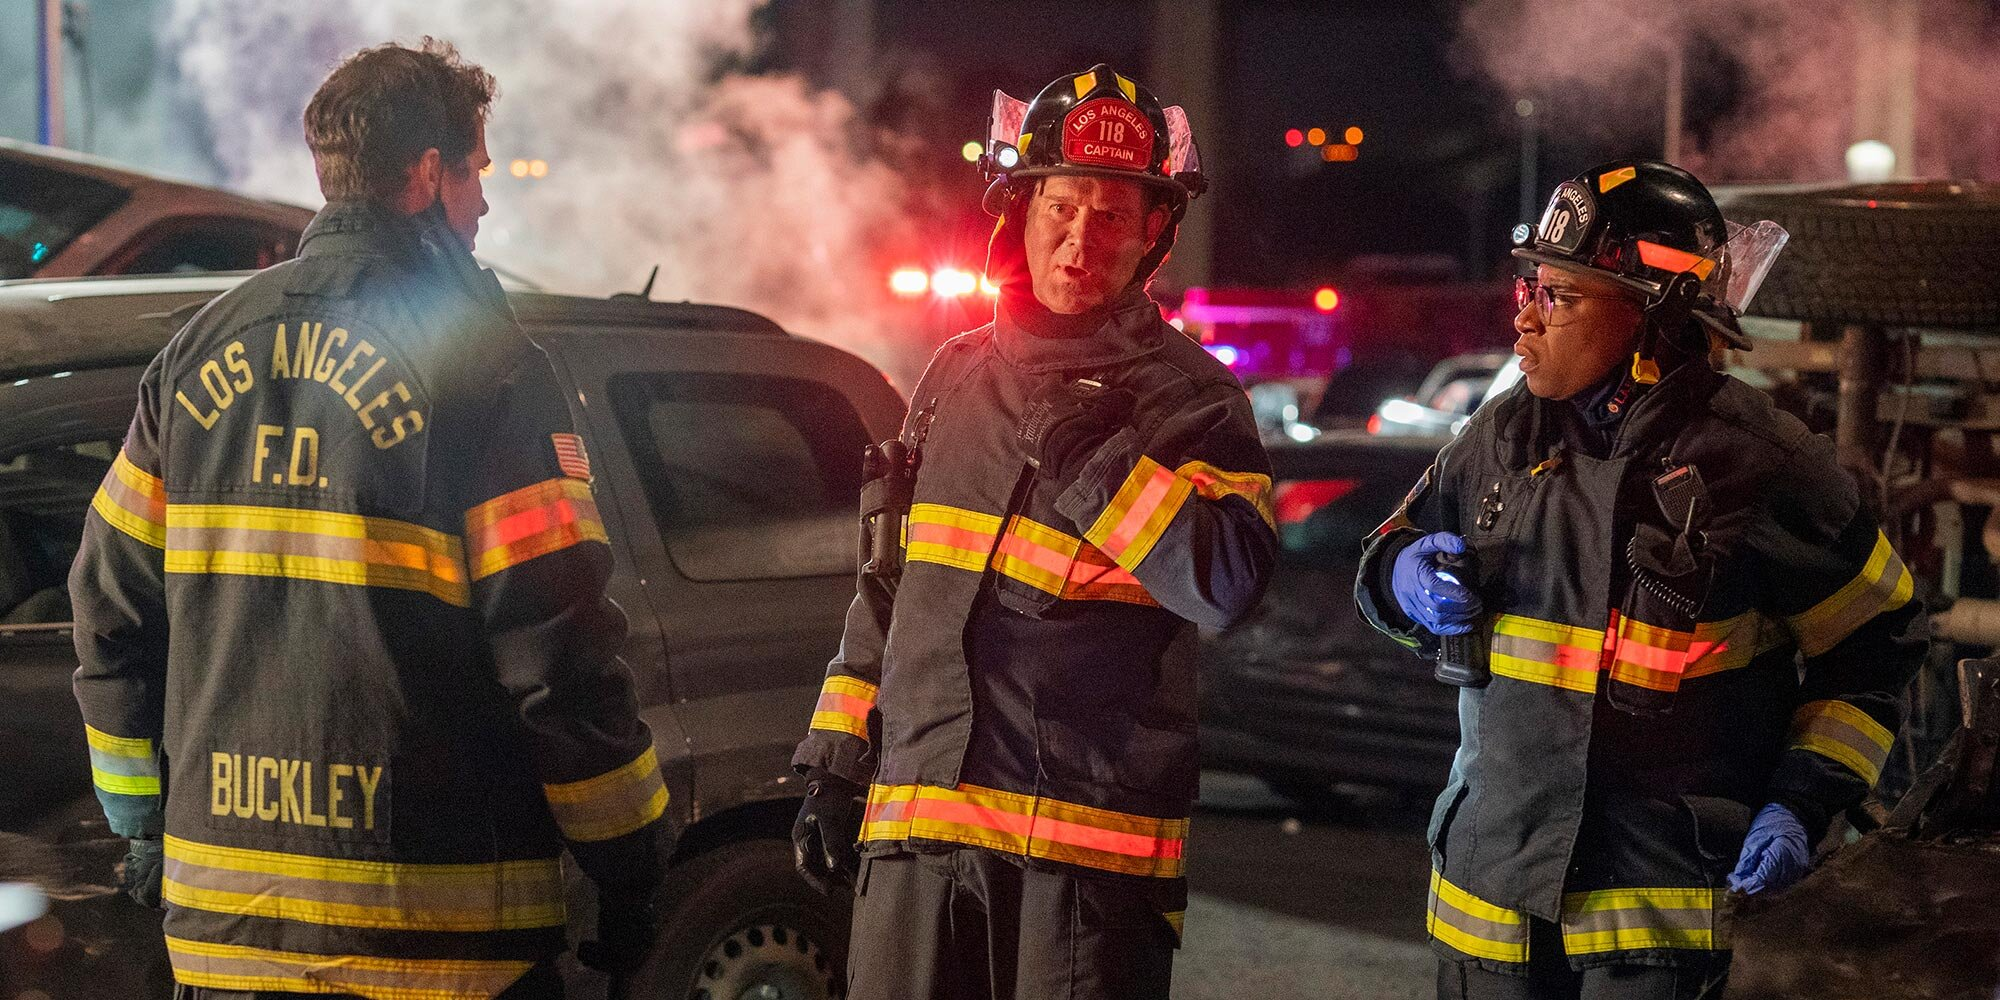 Chimney's brother is involved in a horrific pileup in '9-1-1' exclusive sneak peek